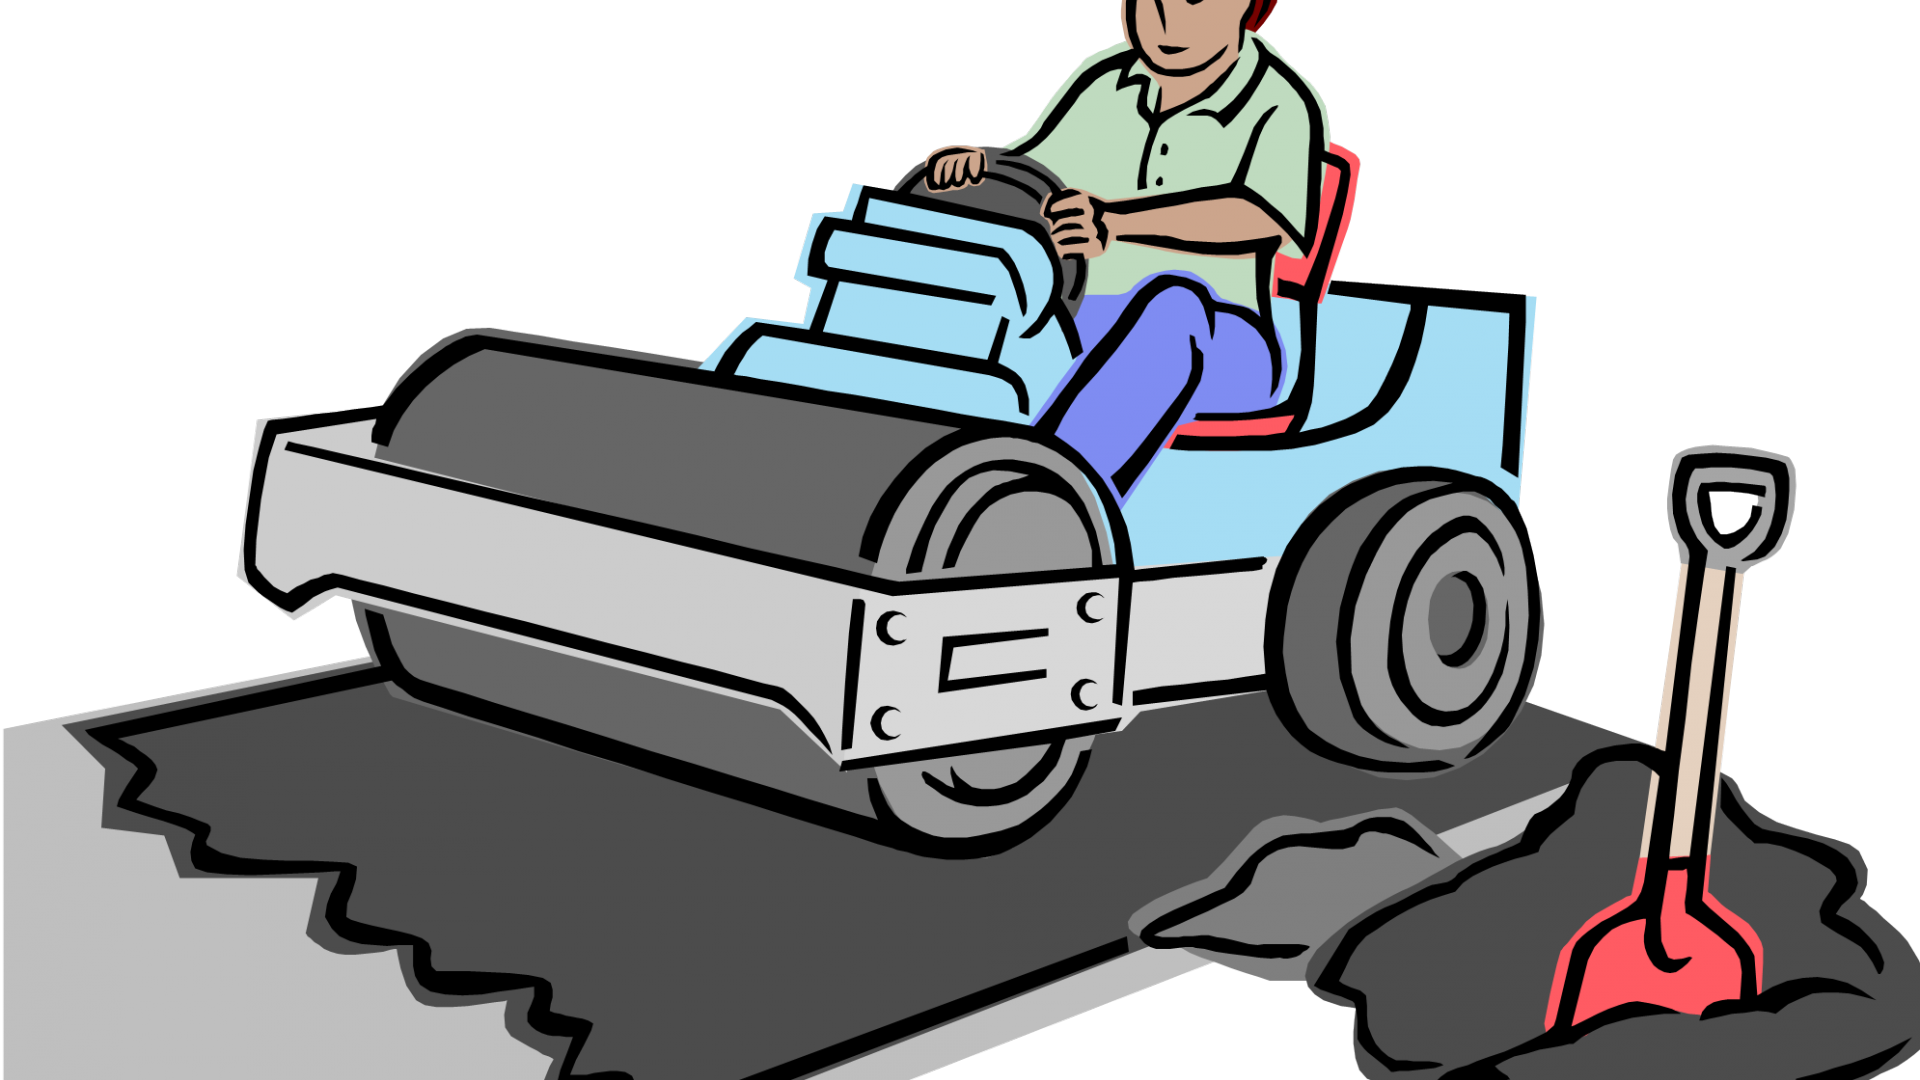 Parking lot clipart paved. Paving cliparts x carwad